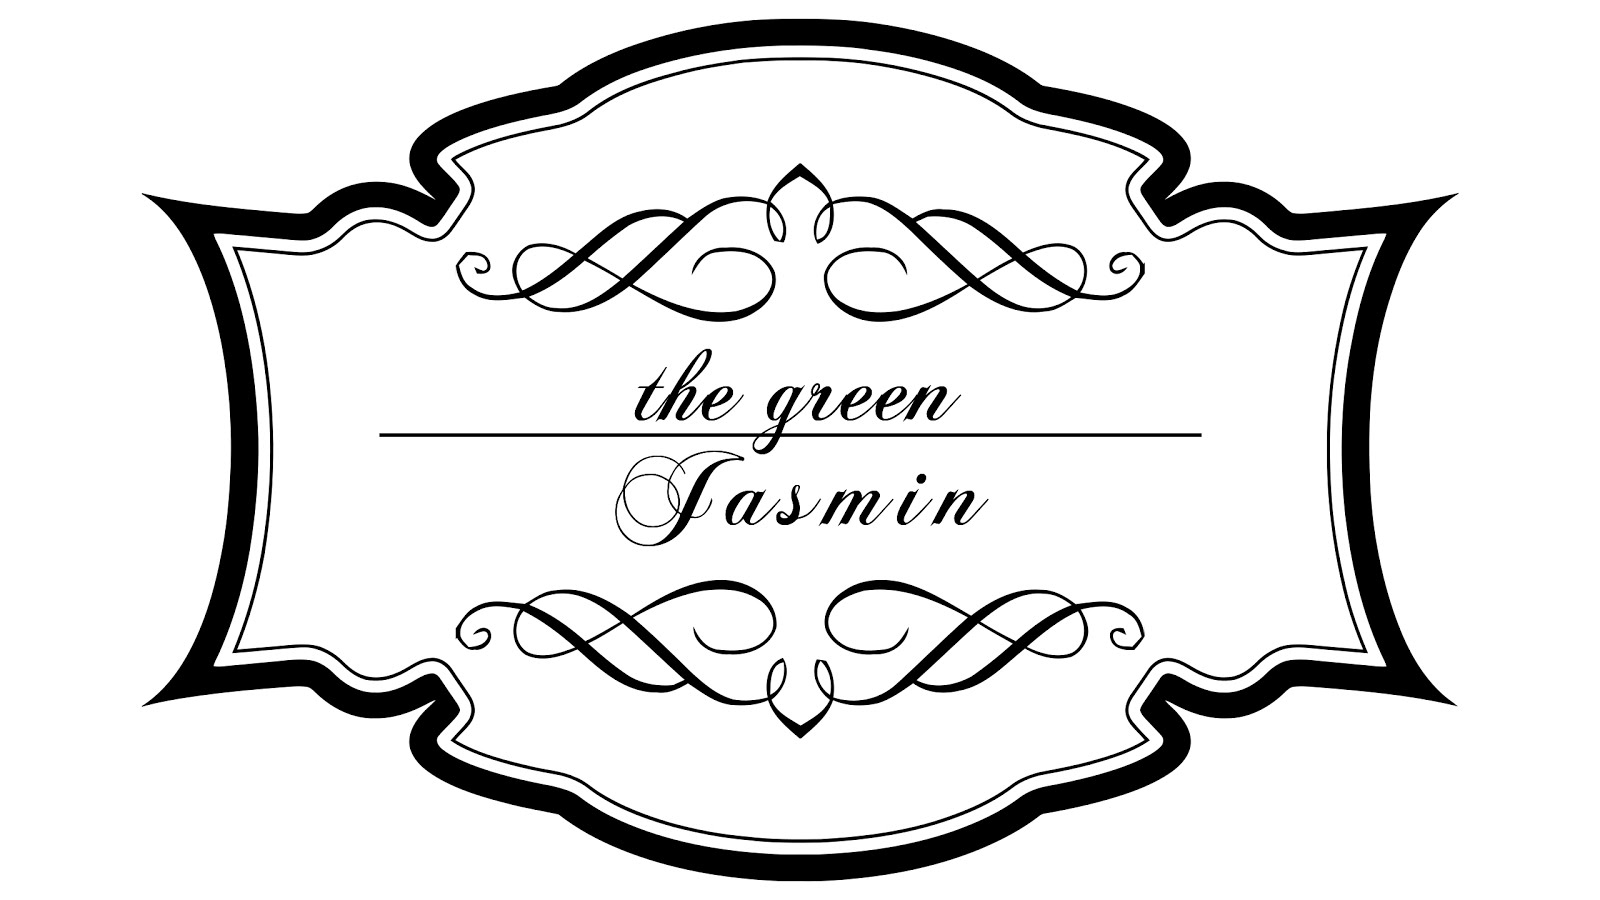 THE GREEN JASMIN